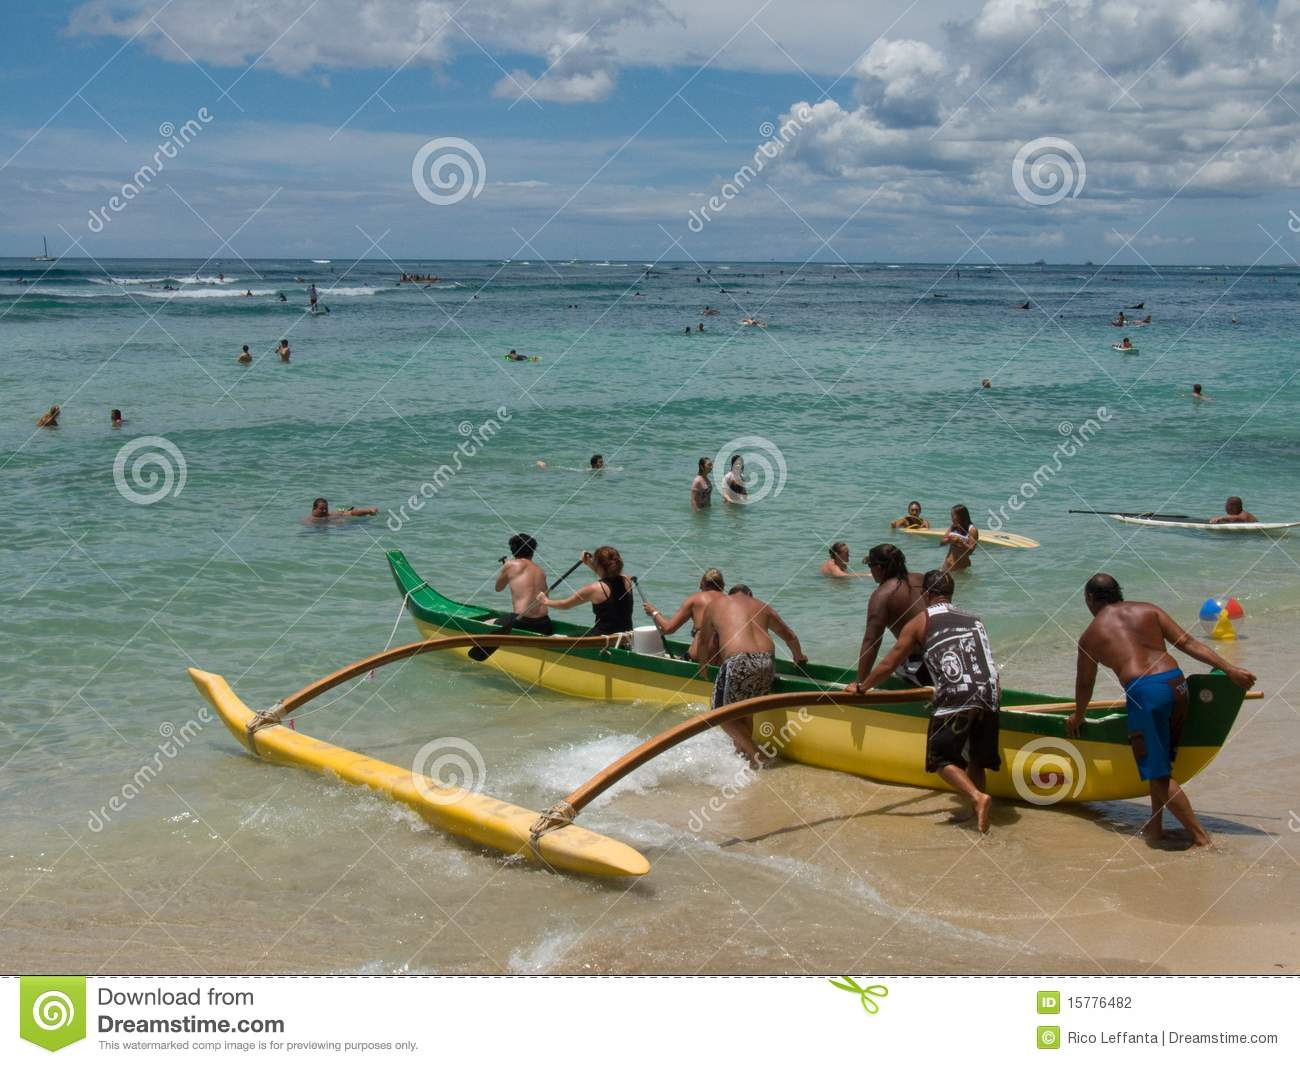 Outrigger Canoe Editorial Photography   Image  15776482